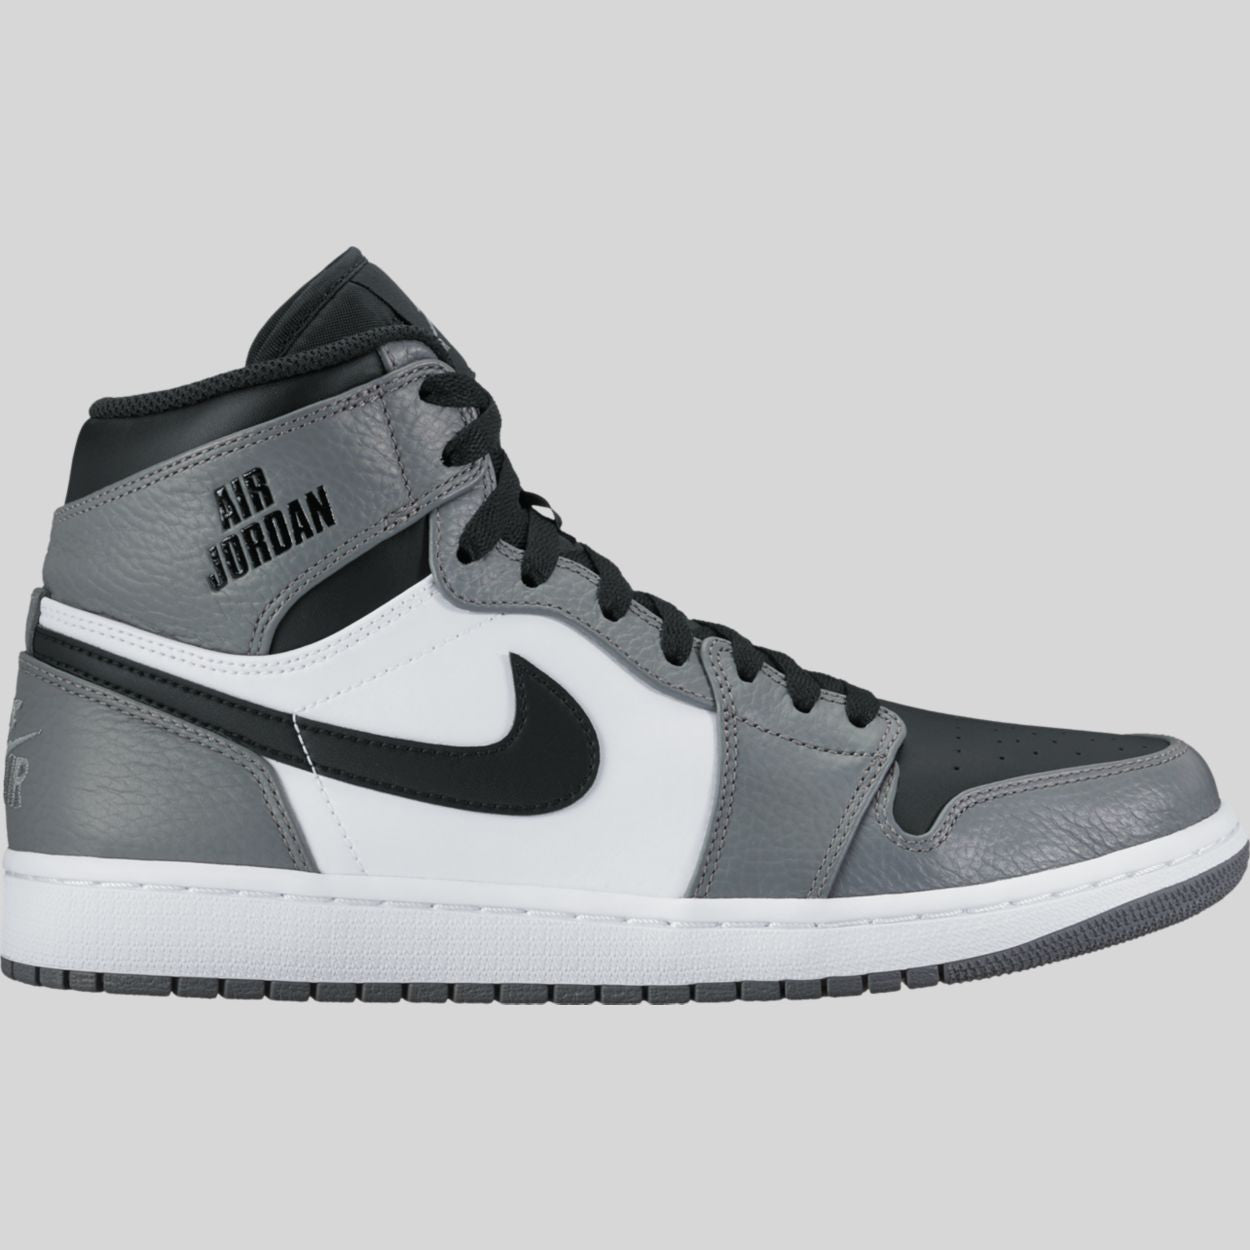 Nike air jordan 1 retro high cool grey black white 332550 024